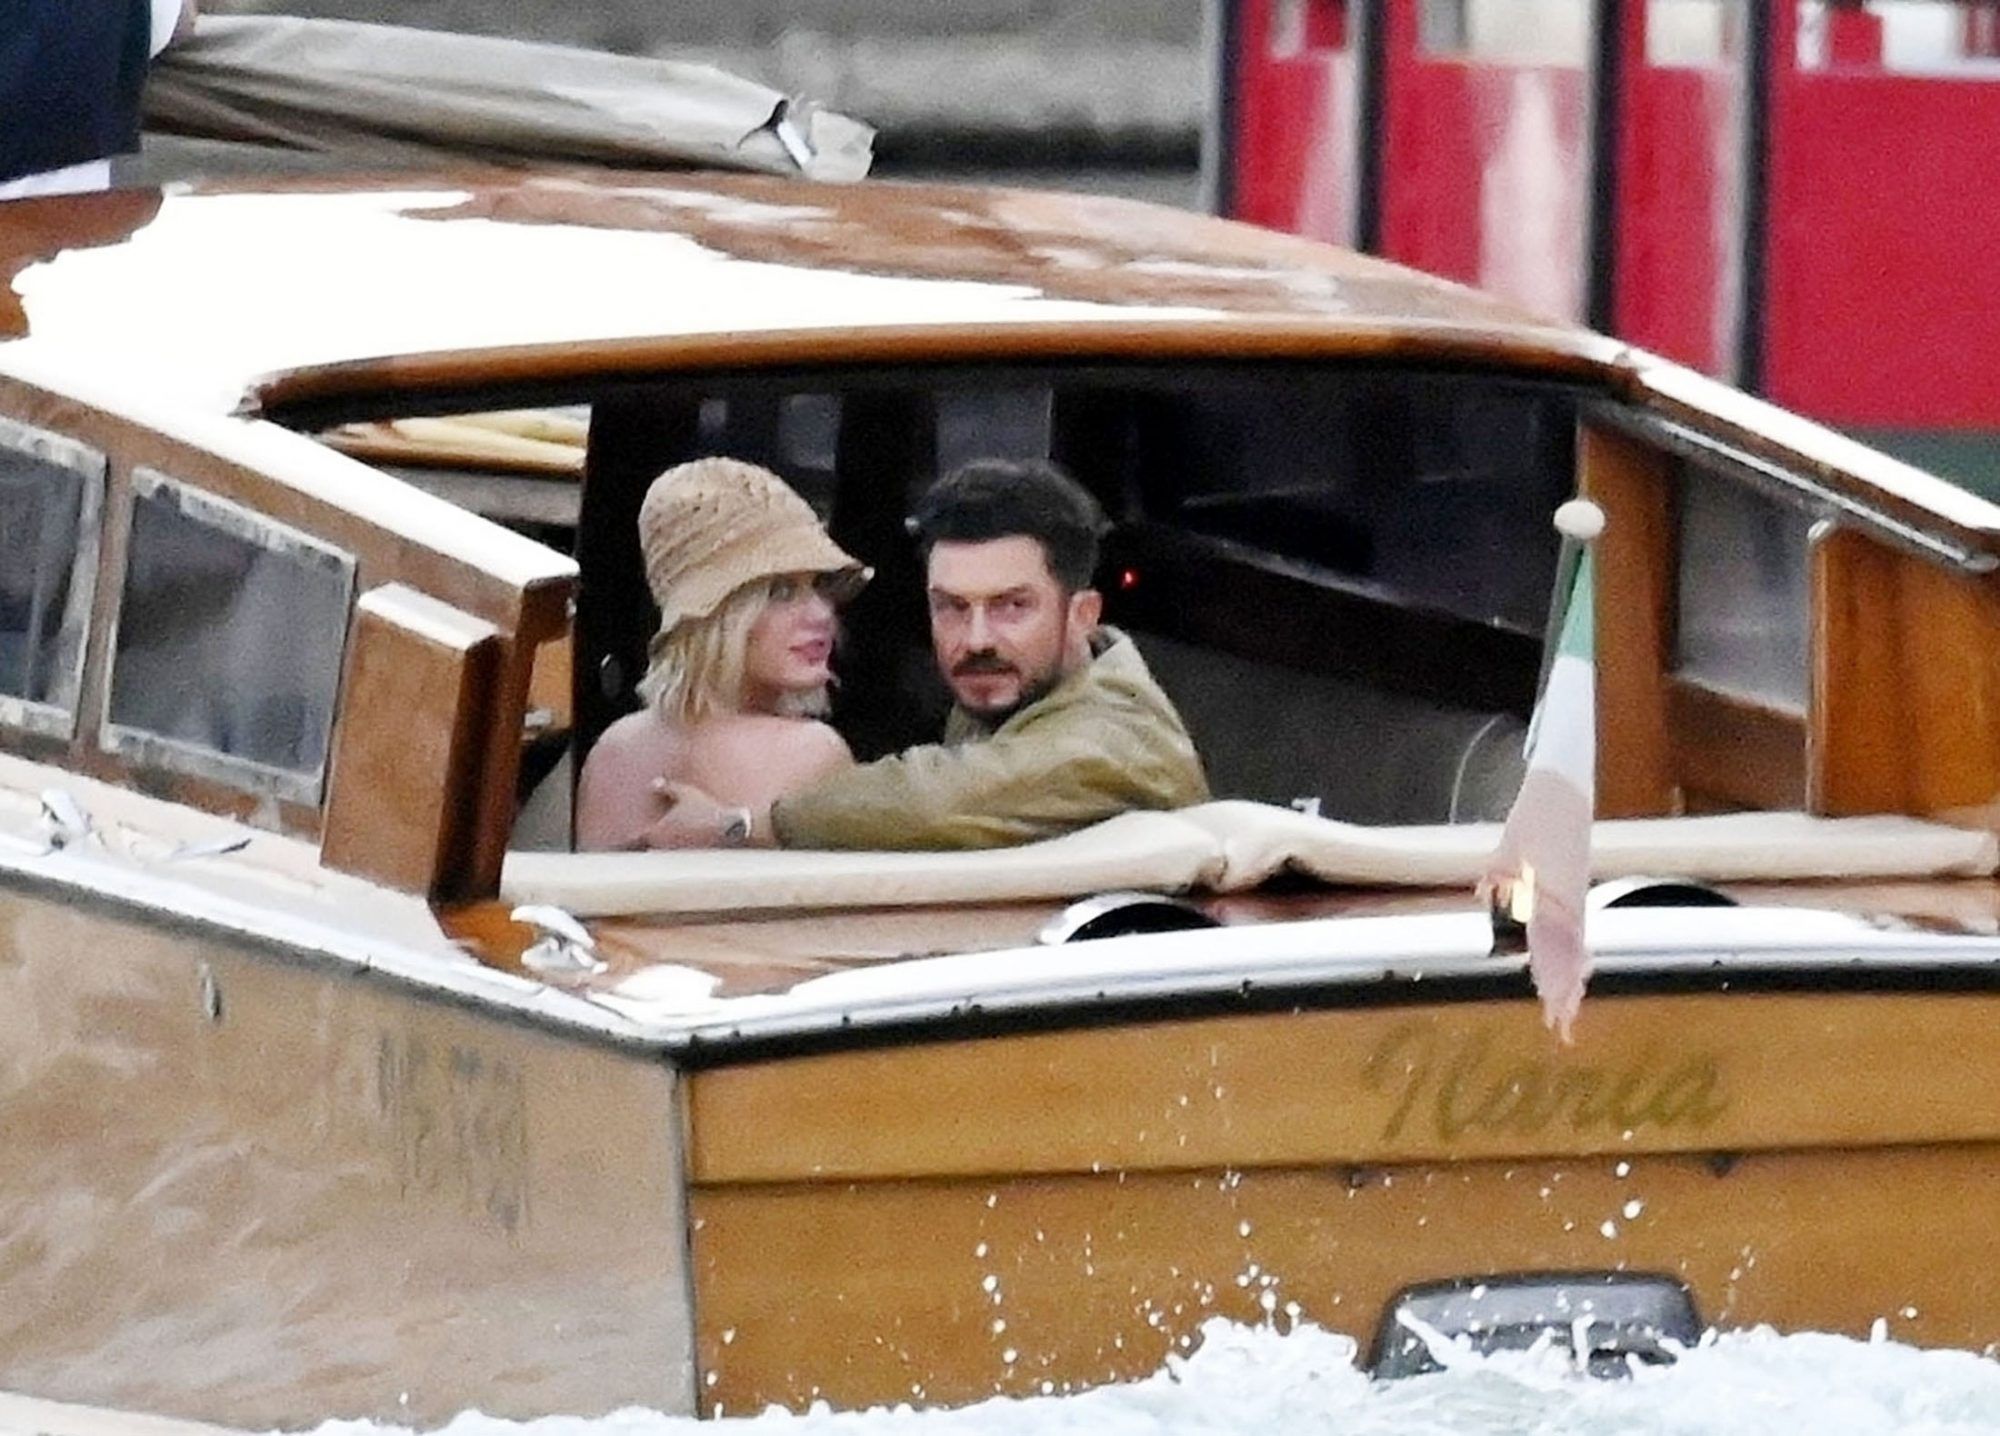 Katy Perry and Orlando Bloom Enjoy a Romantic Evening on a Taxi Boat